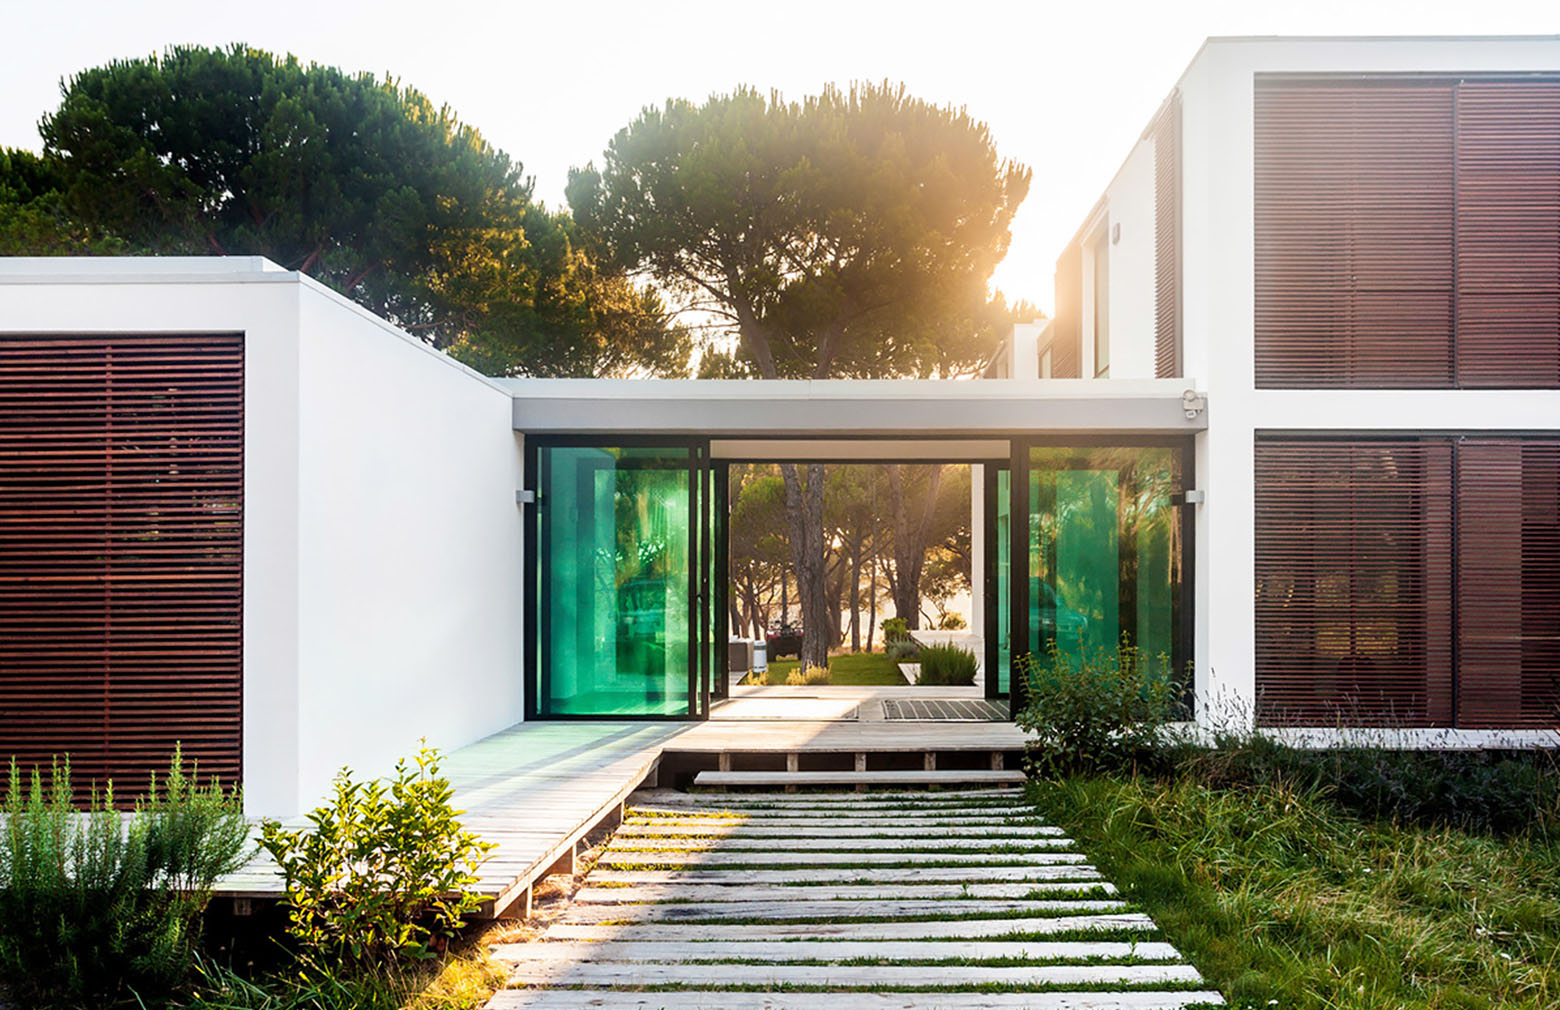 The best modern holiday homes to rent in Portugal - The Spaces